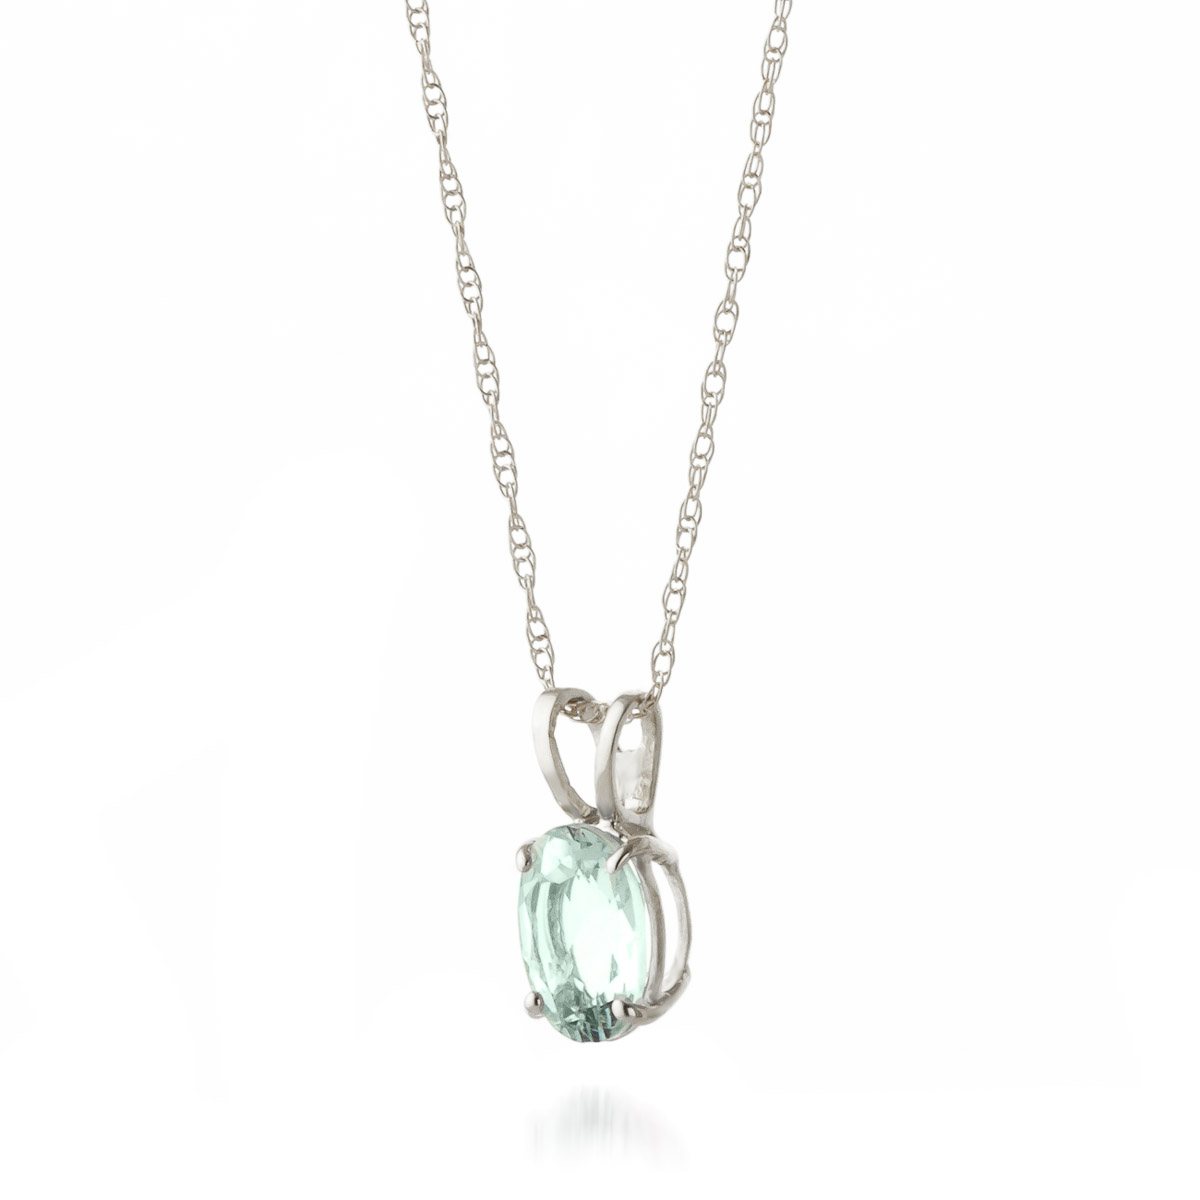 Oval Cut Aquamarine Pendant Necklace 0.75ct in 9ct White Gold